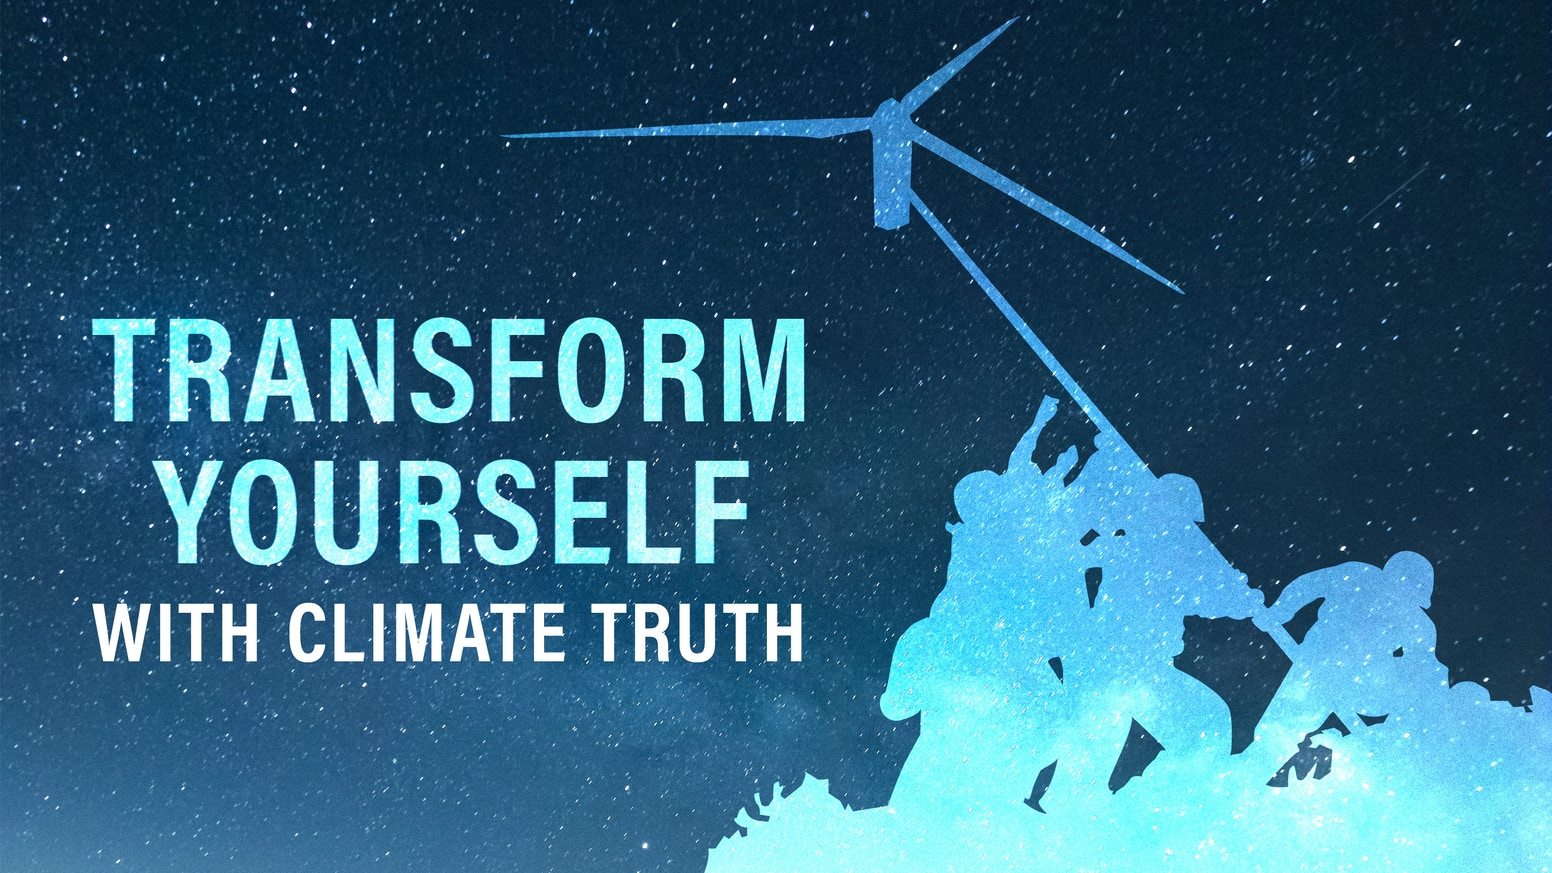 A radical new self-help book for facing climate truth, accepting your fear of collapse, and becoming the hero humanity needs. Sign up for updates from The Climate Mobilization!